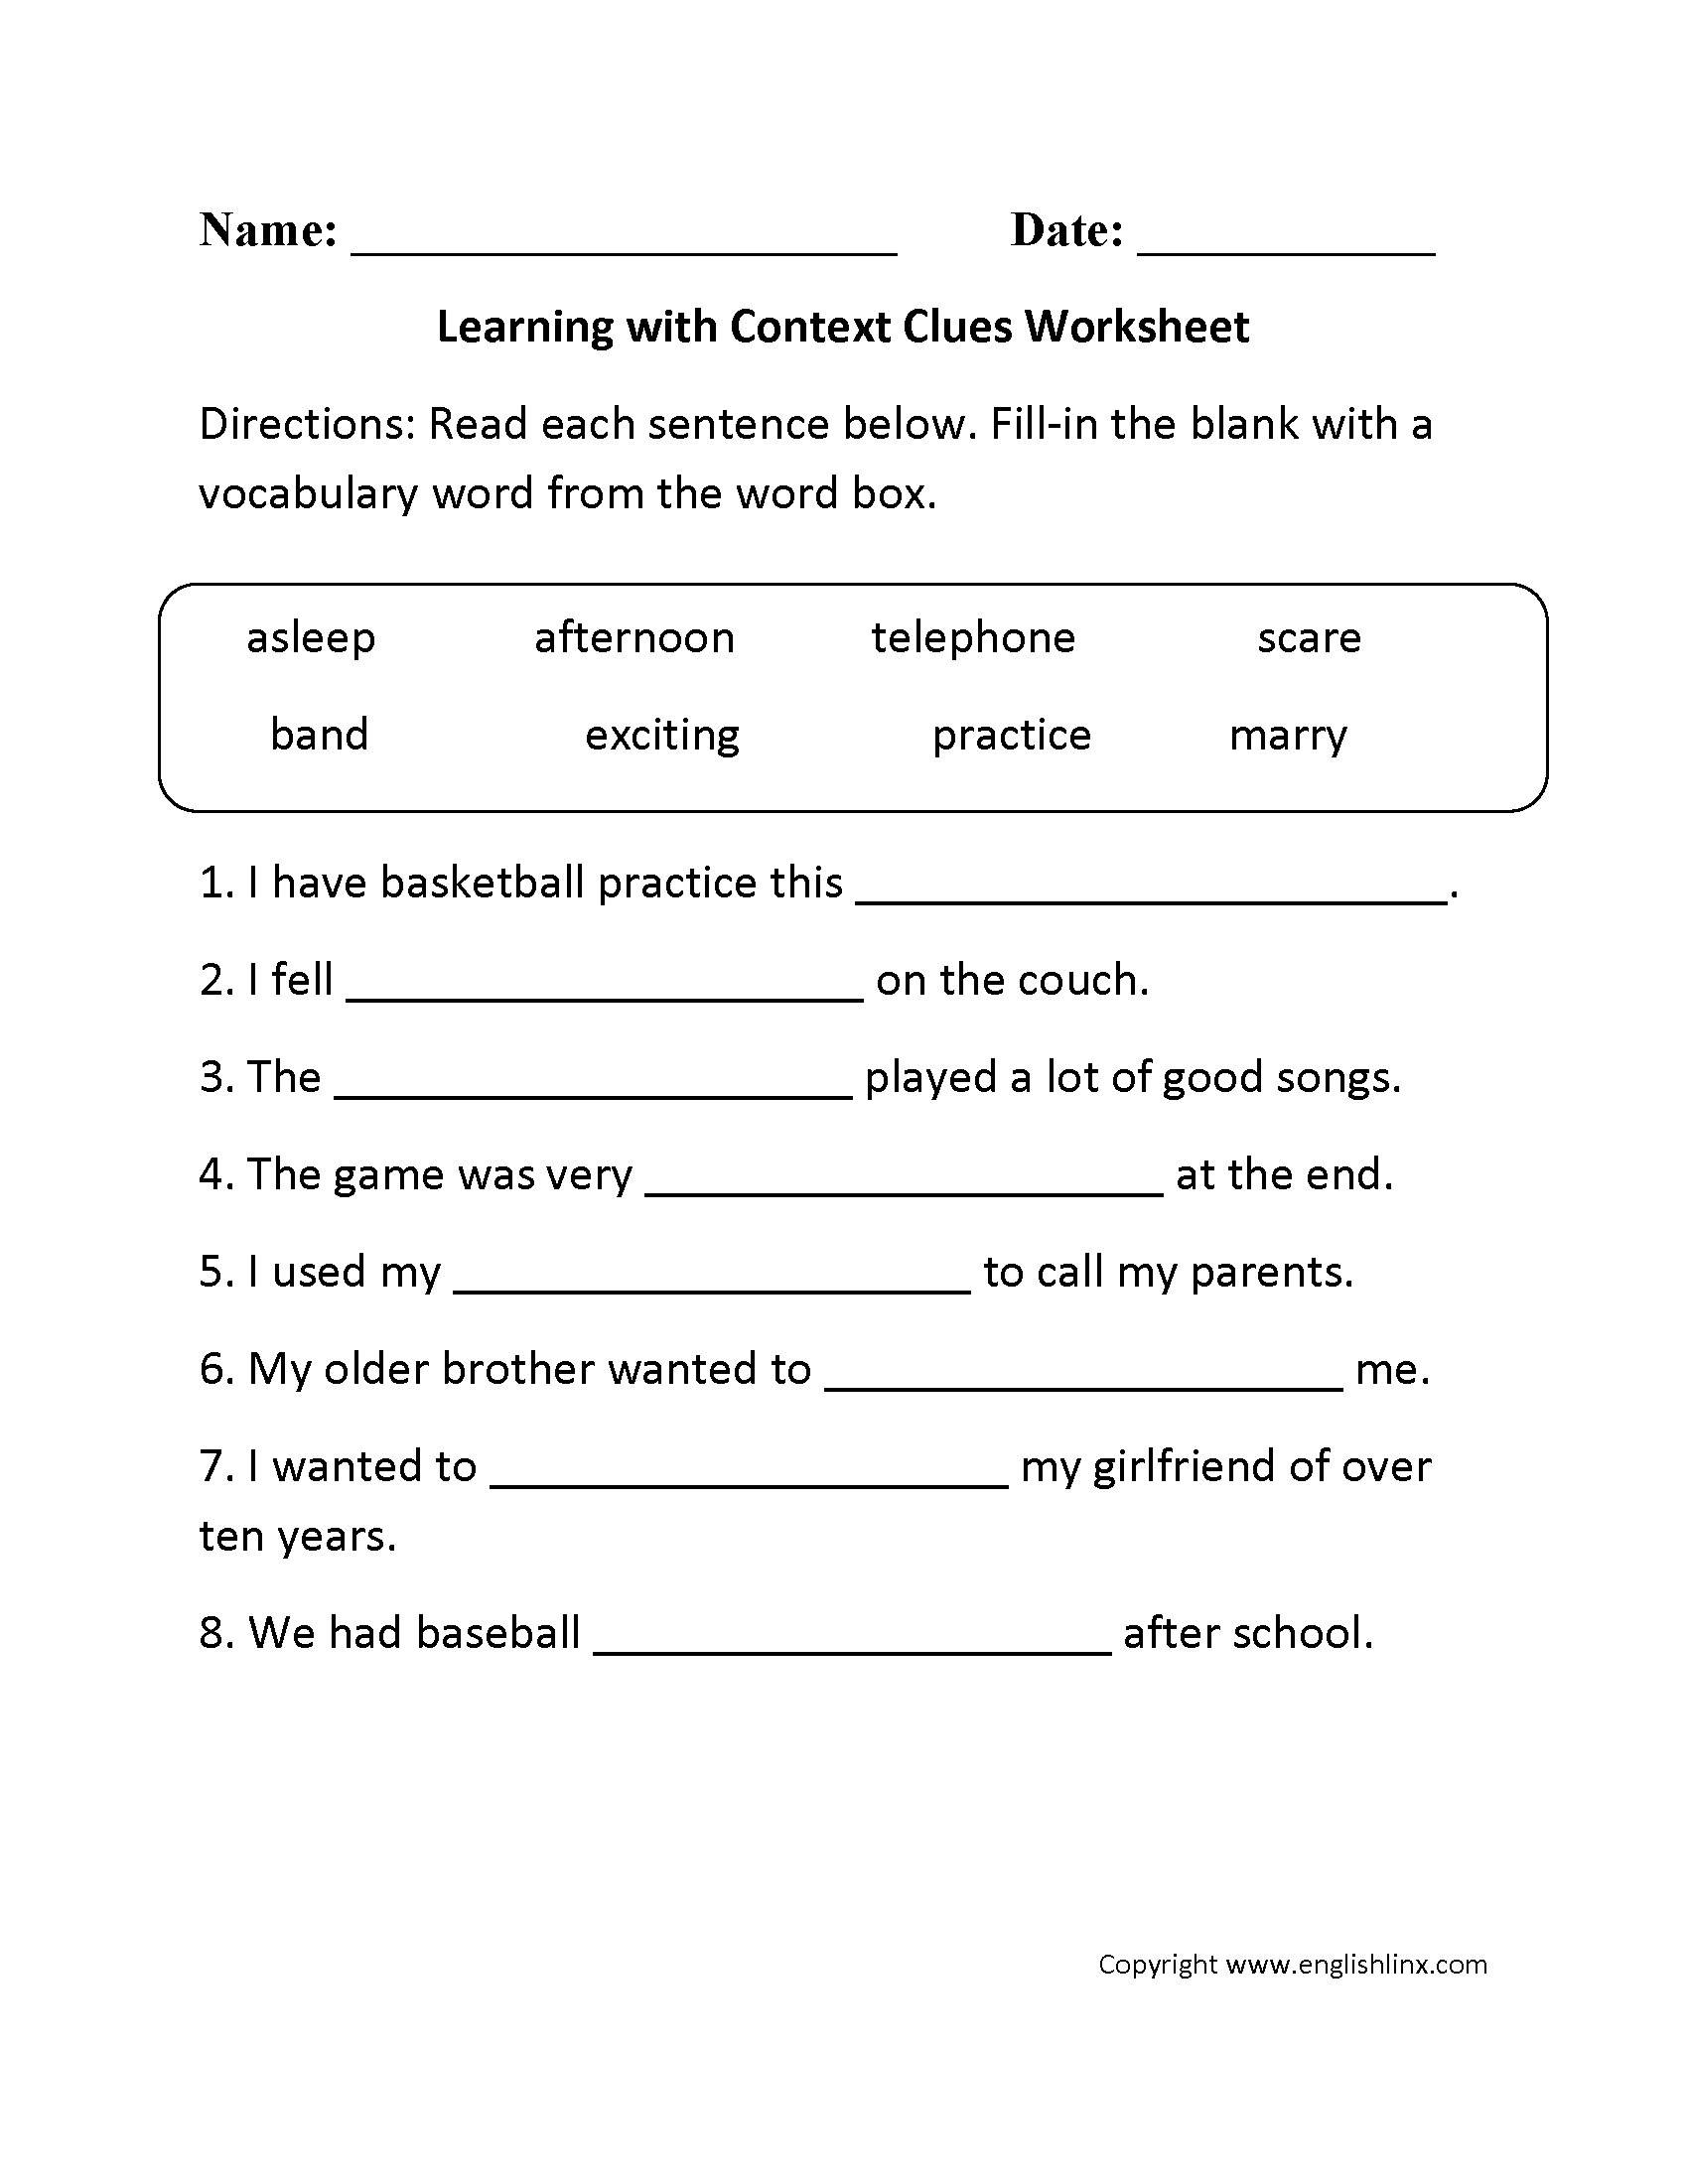 Context Clues Worksheets 3rd Grade